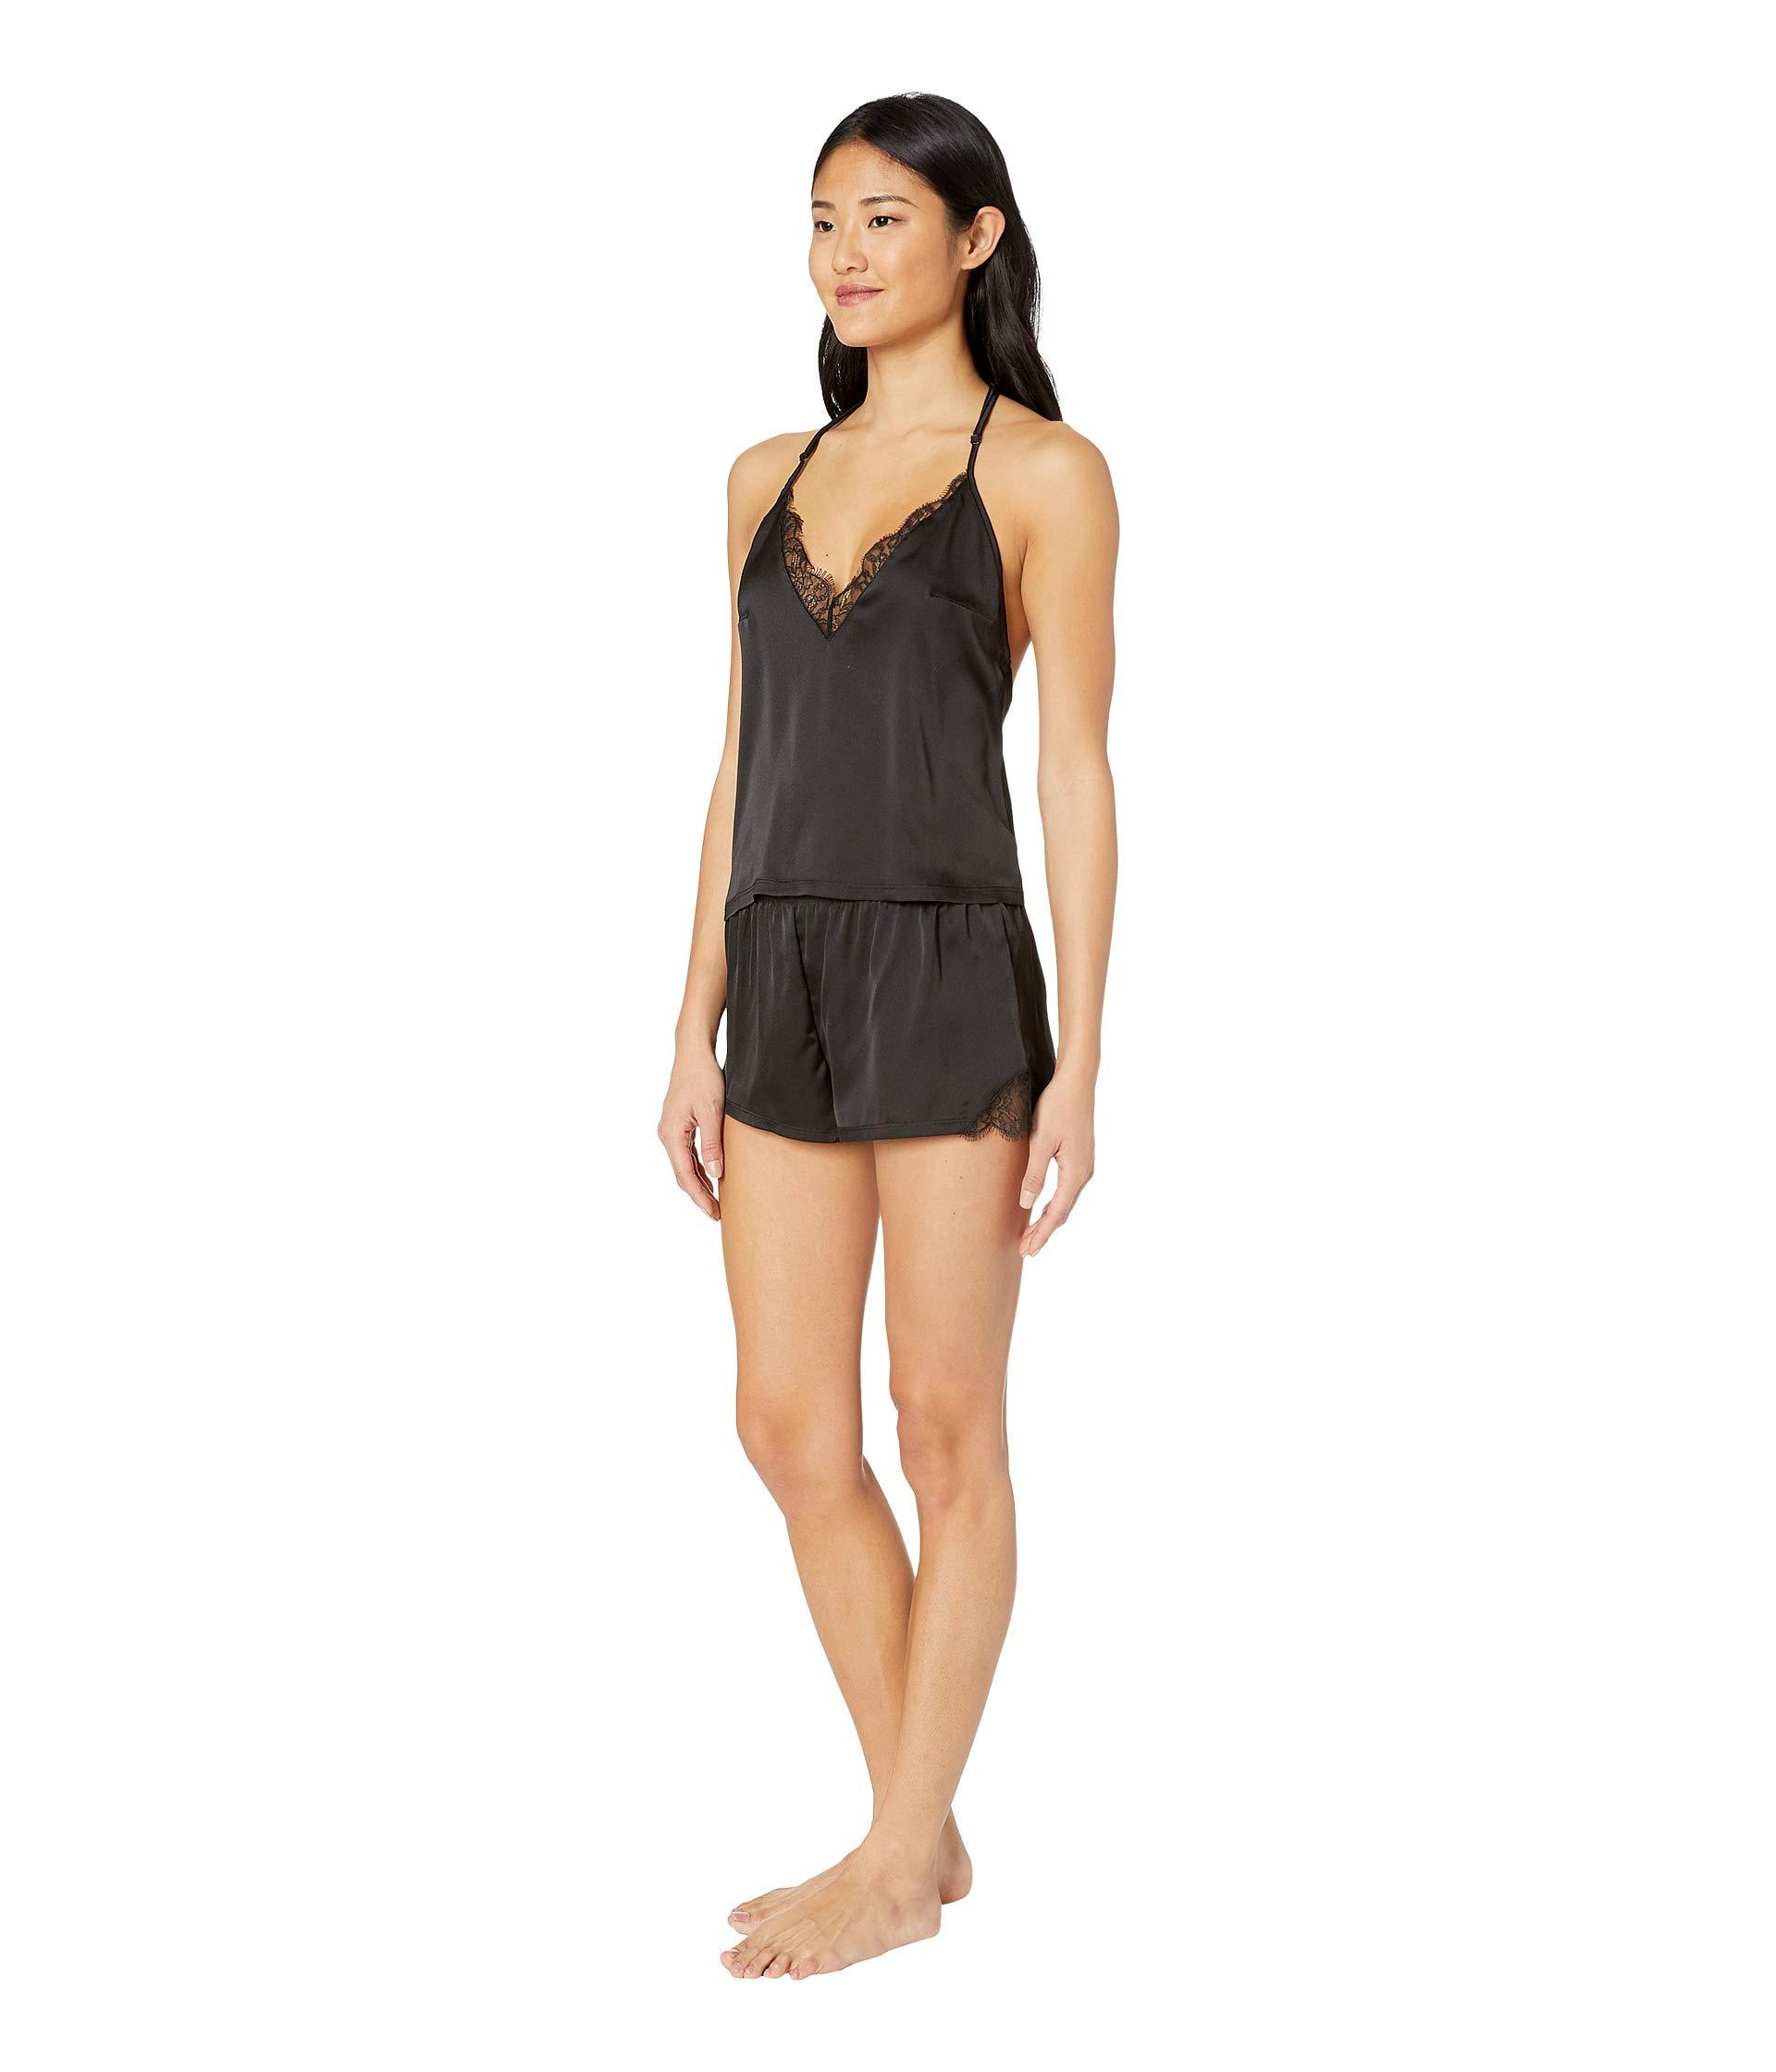 Lyst - Bluebella Ivy Cami And Shorts Set (black) Women s Pajama Sets ... 972038ef7